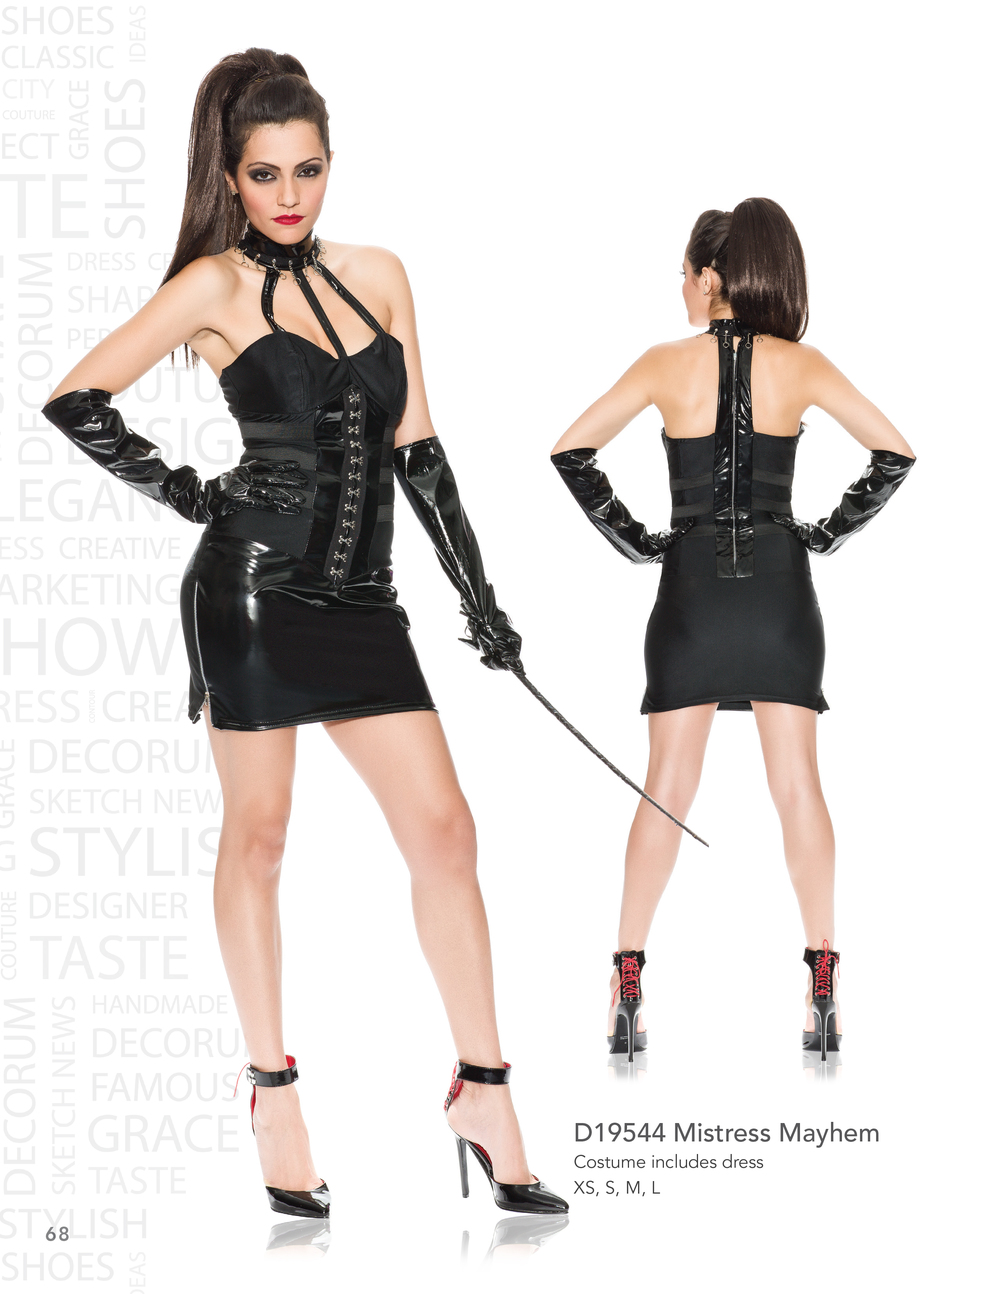 D19544 Mistress Mayhem